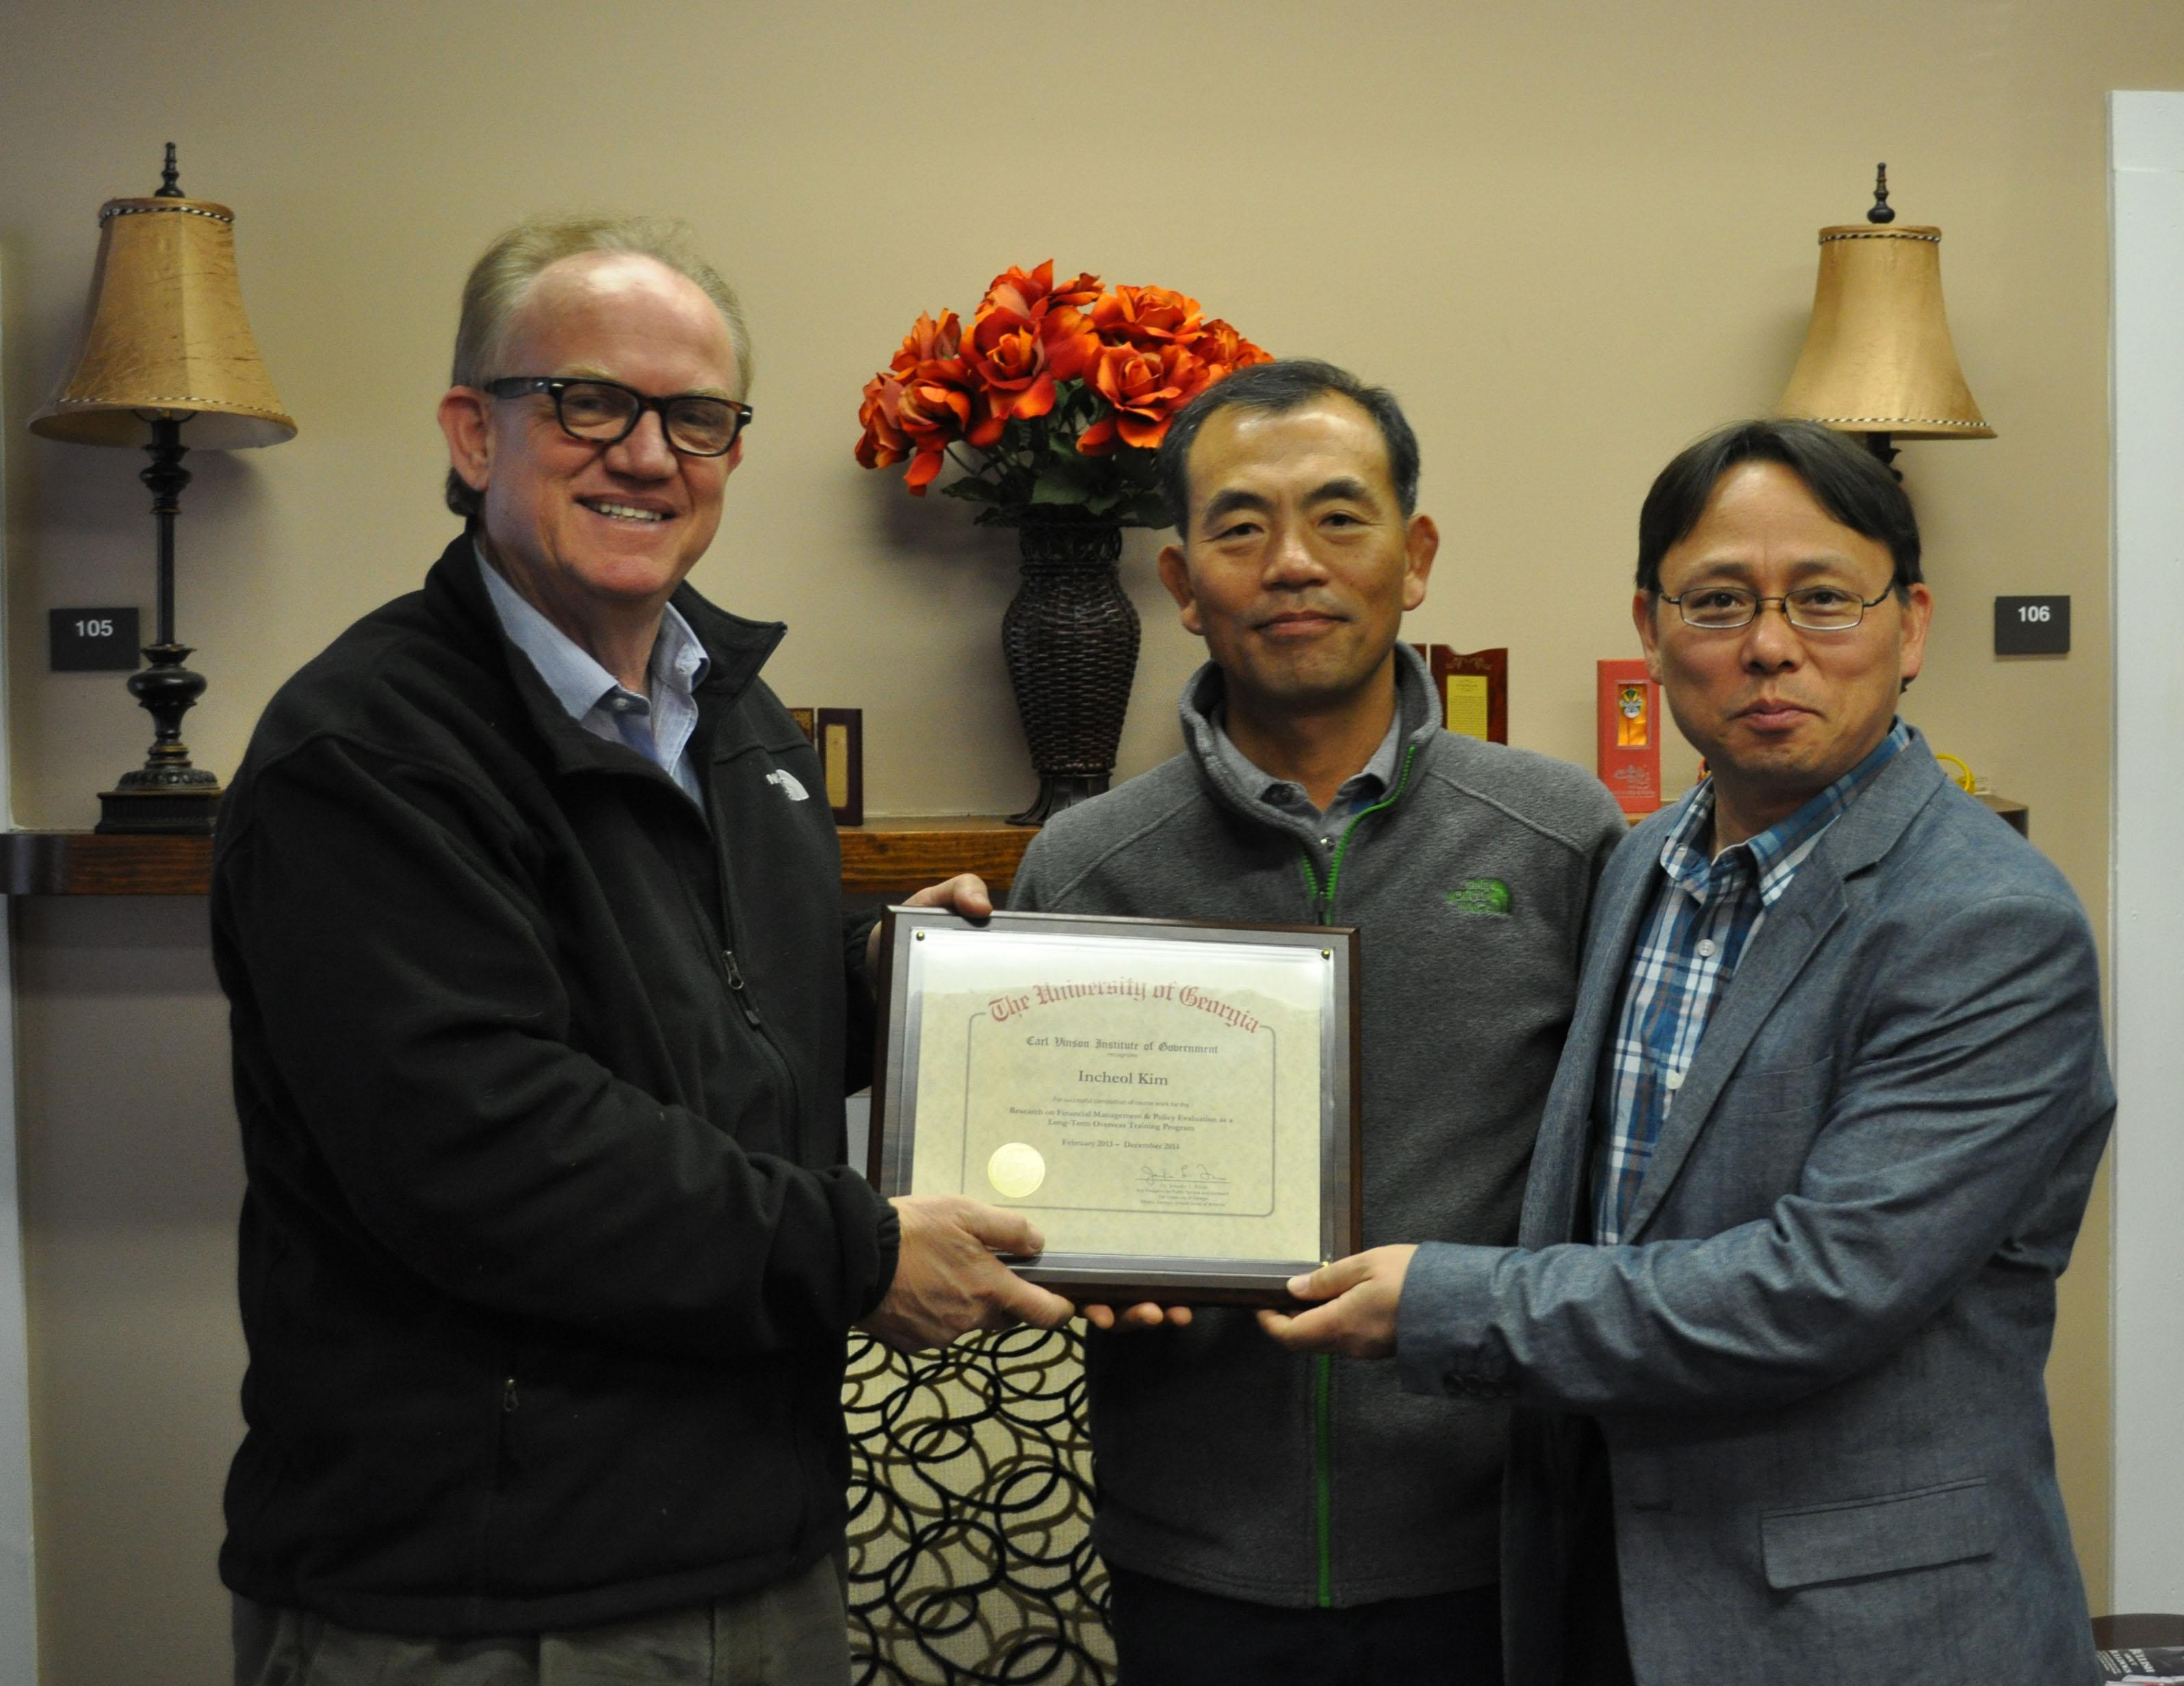 Incheol Kim Visiting Scholar - December 2014